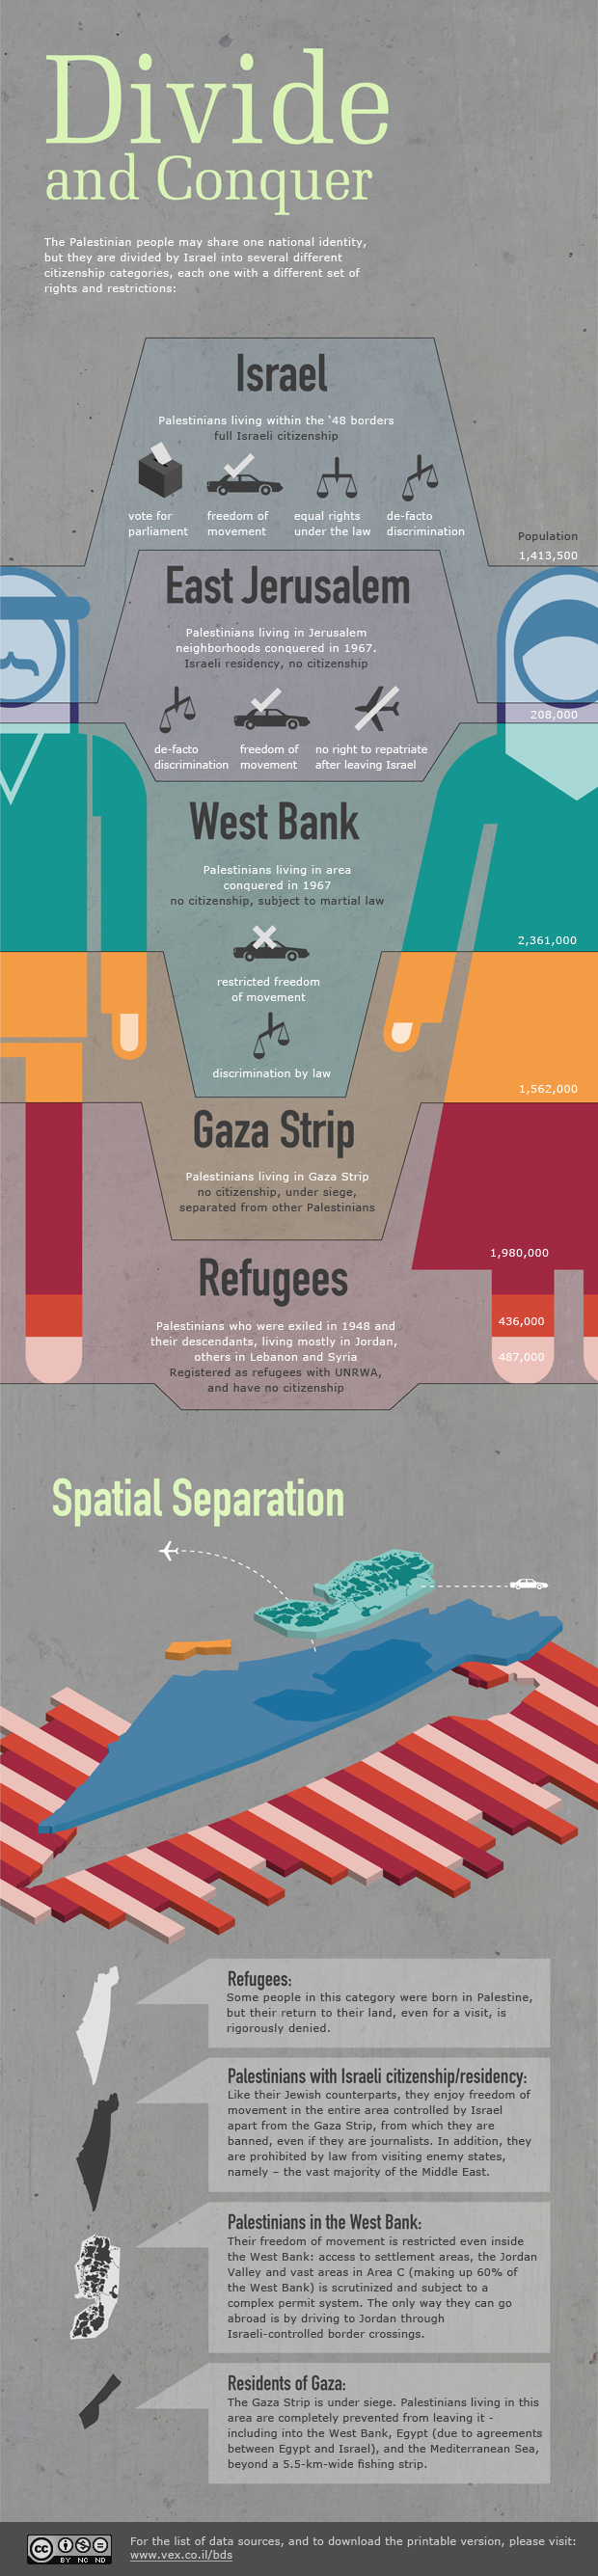 Visualizing Occupation: Divide and Conquer